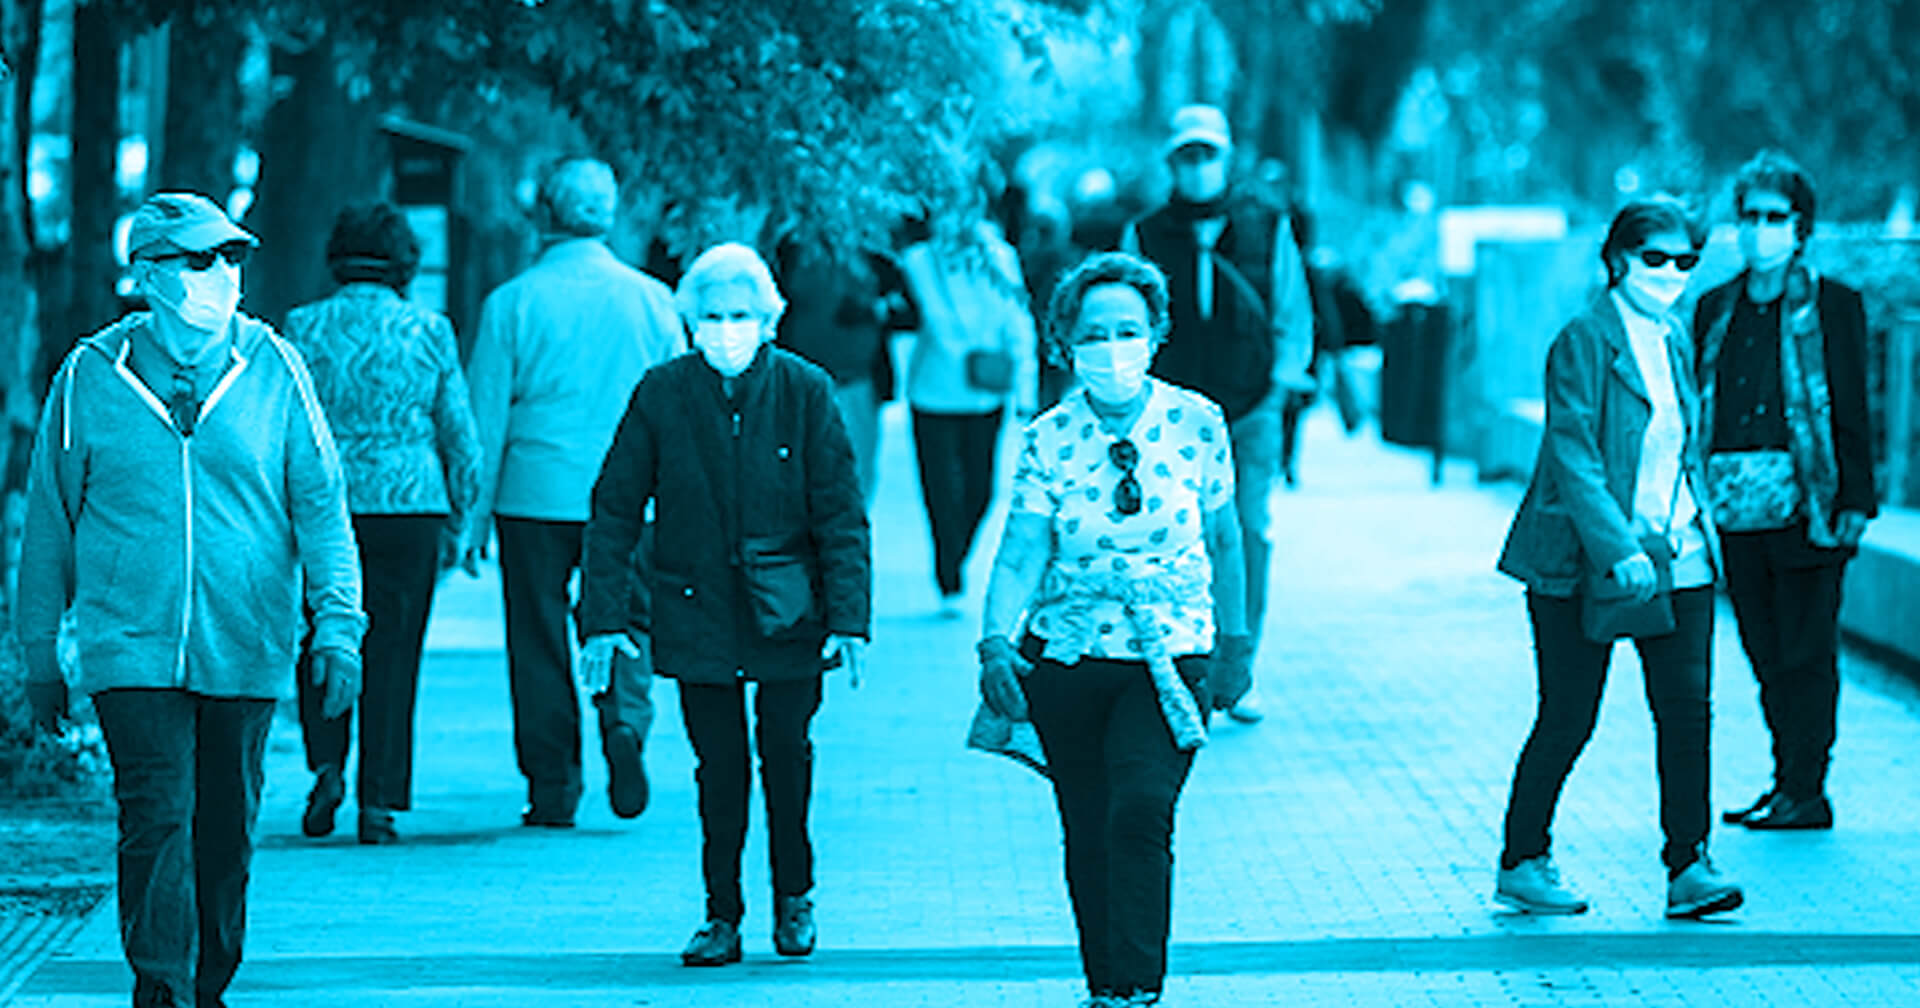 Elderly people walking outside with masks